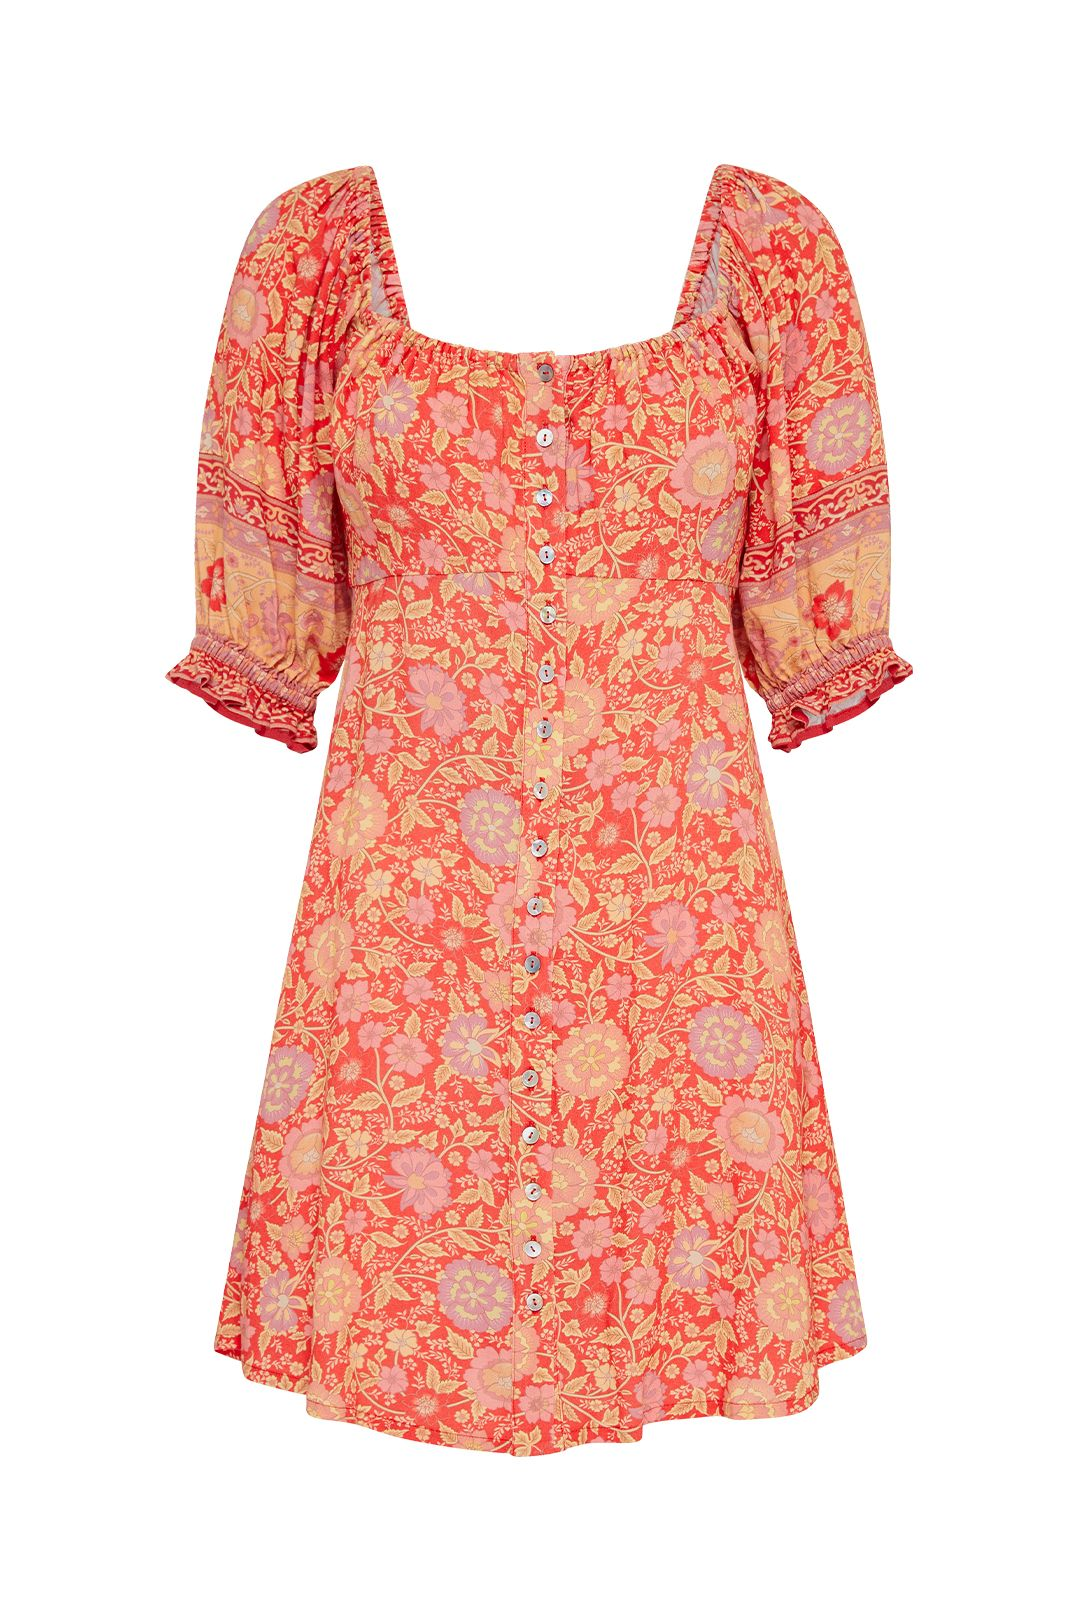 Spell Love Story Dress Red Coral Floral